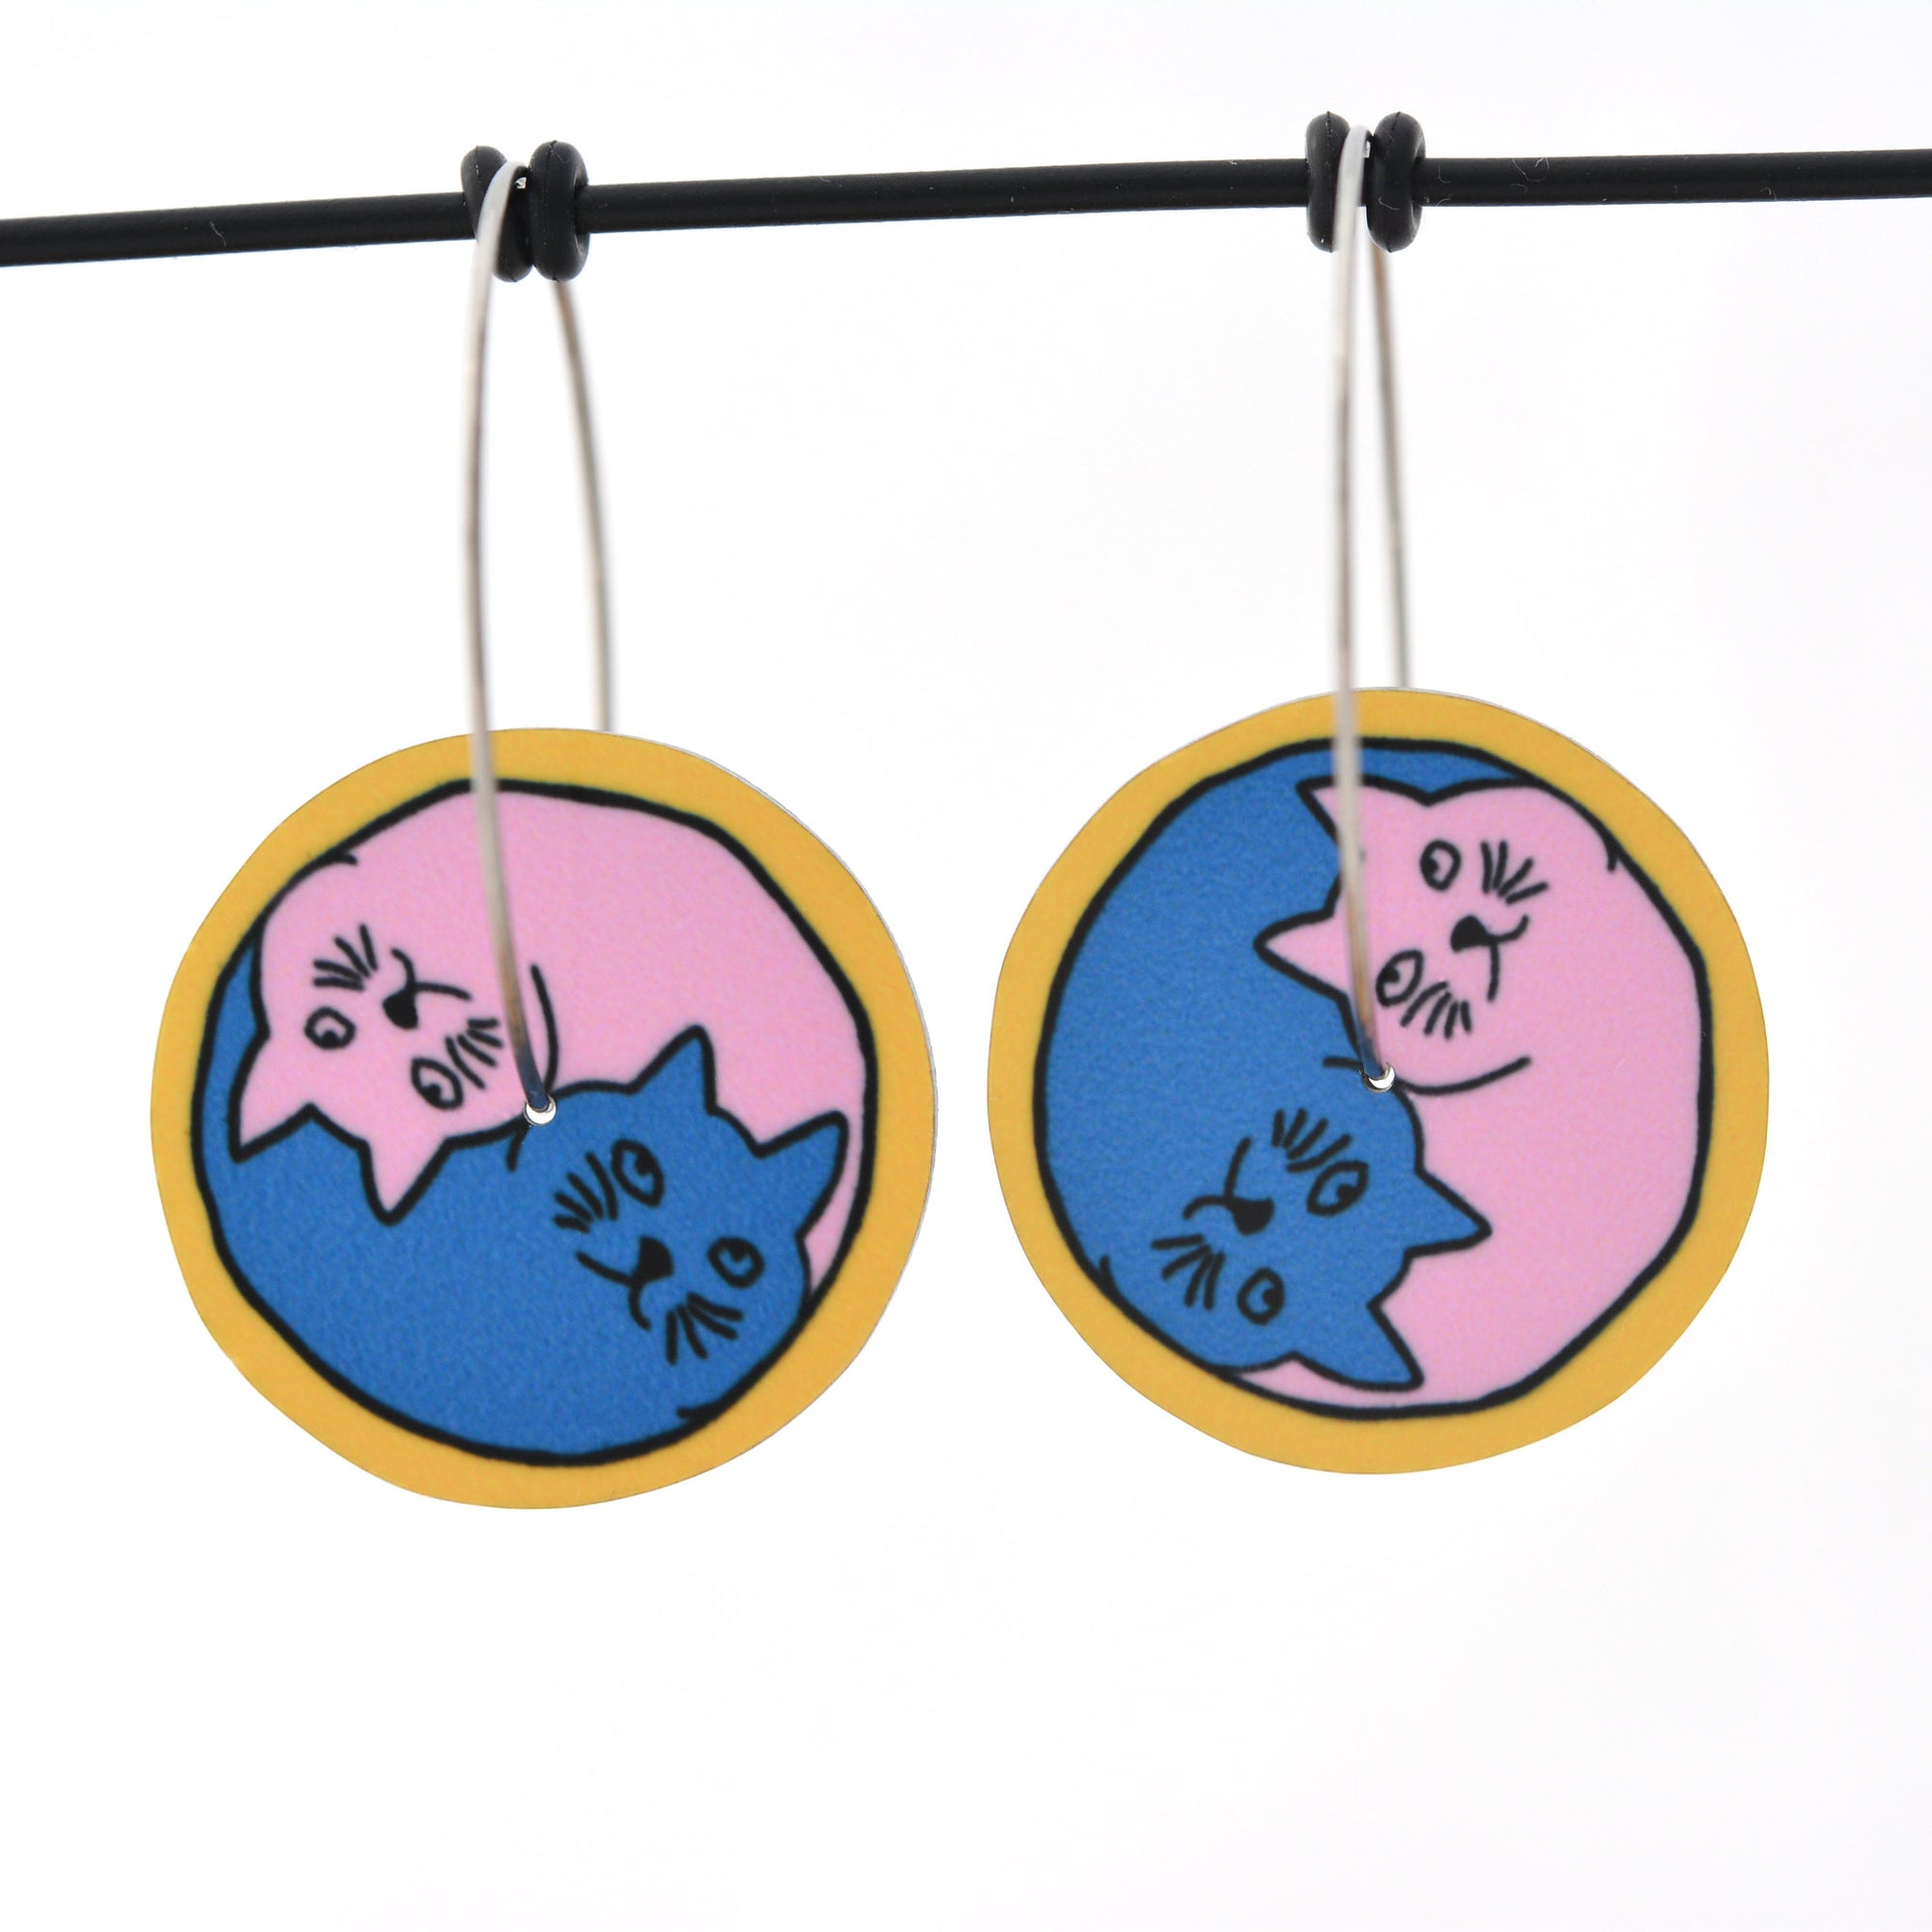 Yin Yang Cats circle earrings in pink and blue with a yellow outer edge, approximately 24mm round. Aluminium, with surgical stainless steel hoops approximately 30mm in diameter.